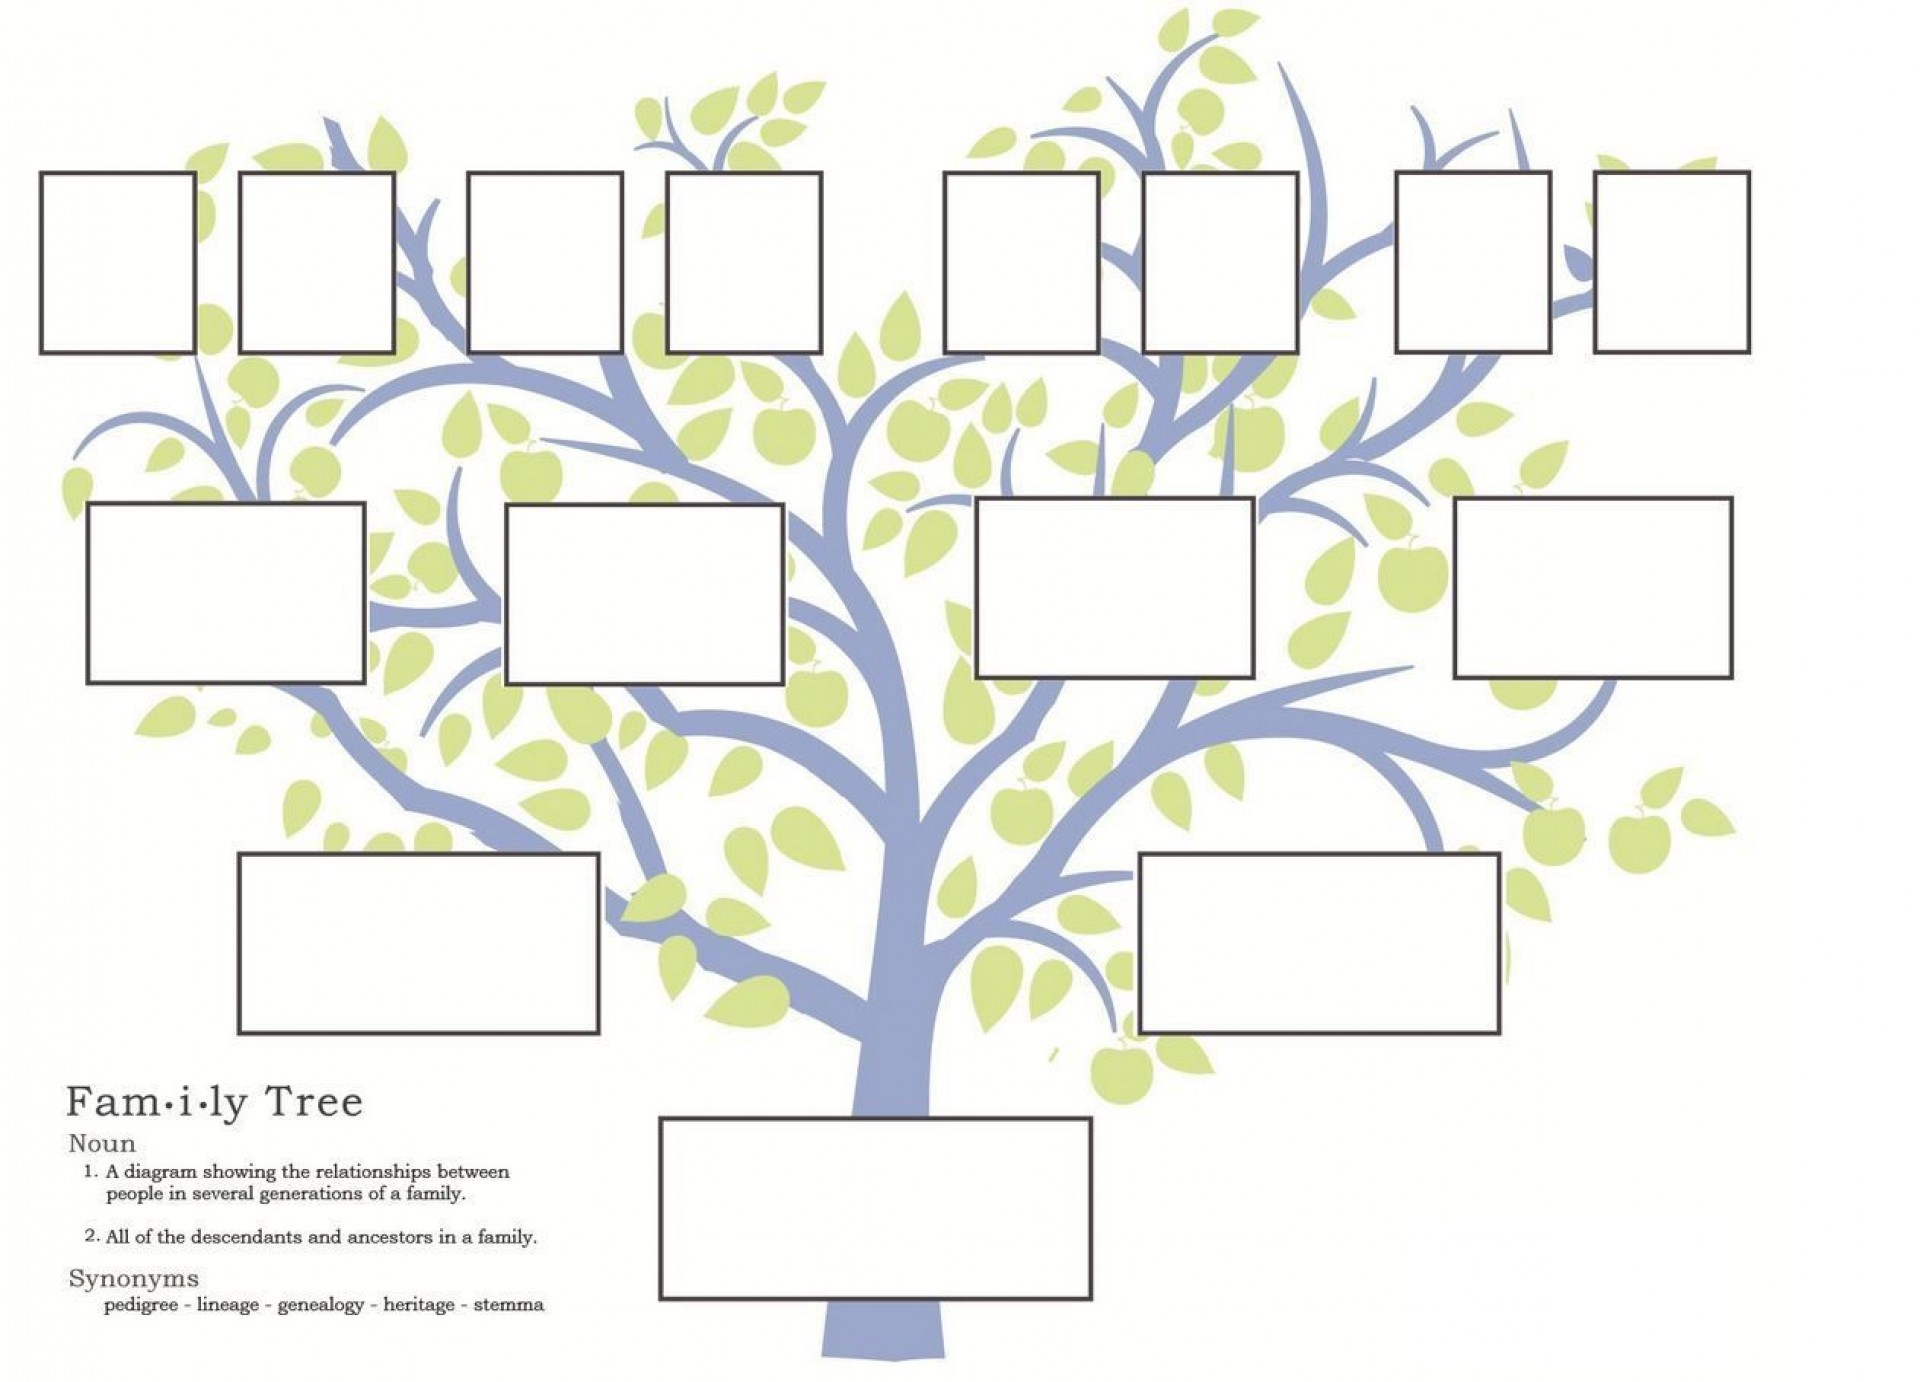 000 Imposing Free Family Tree Template Word Sample  Microsoft Document1920